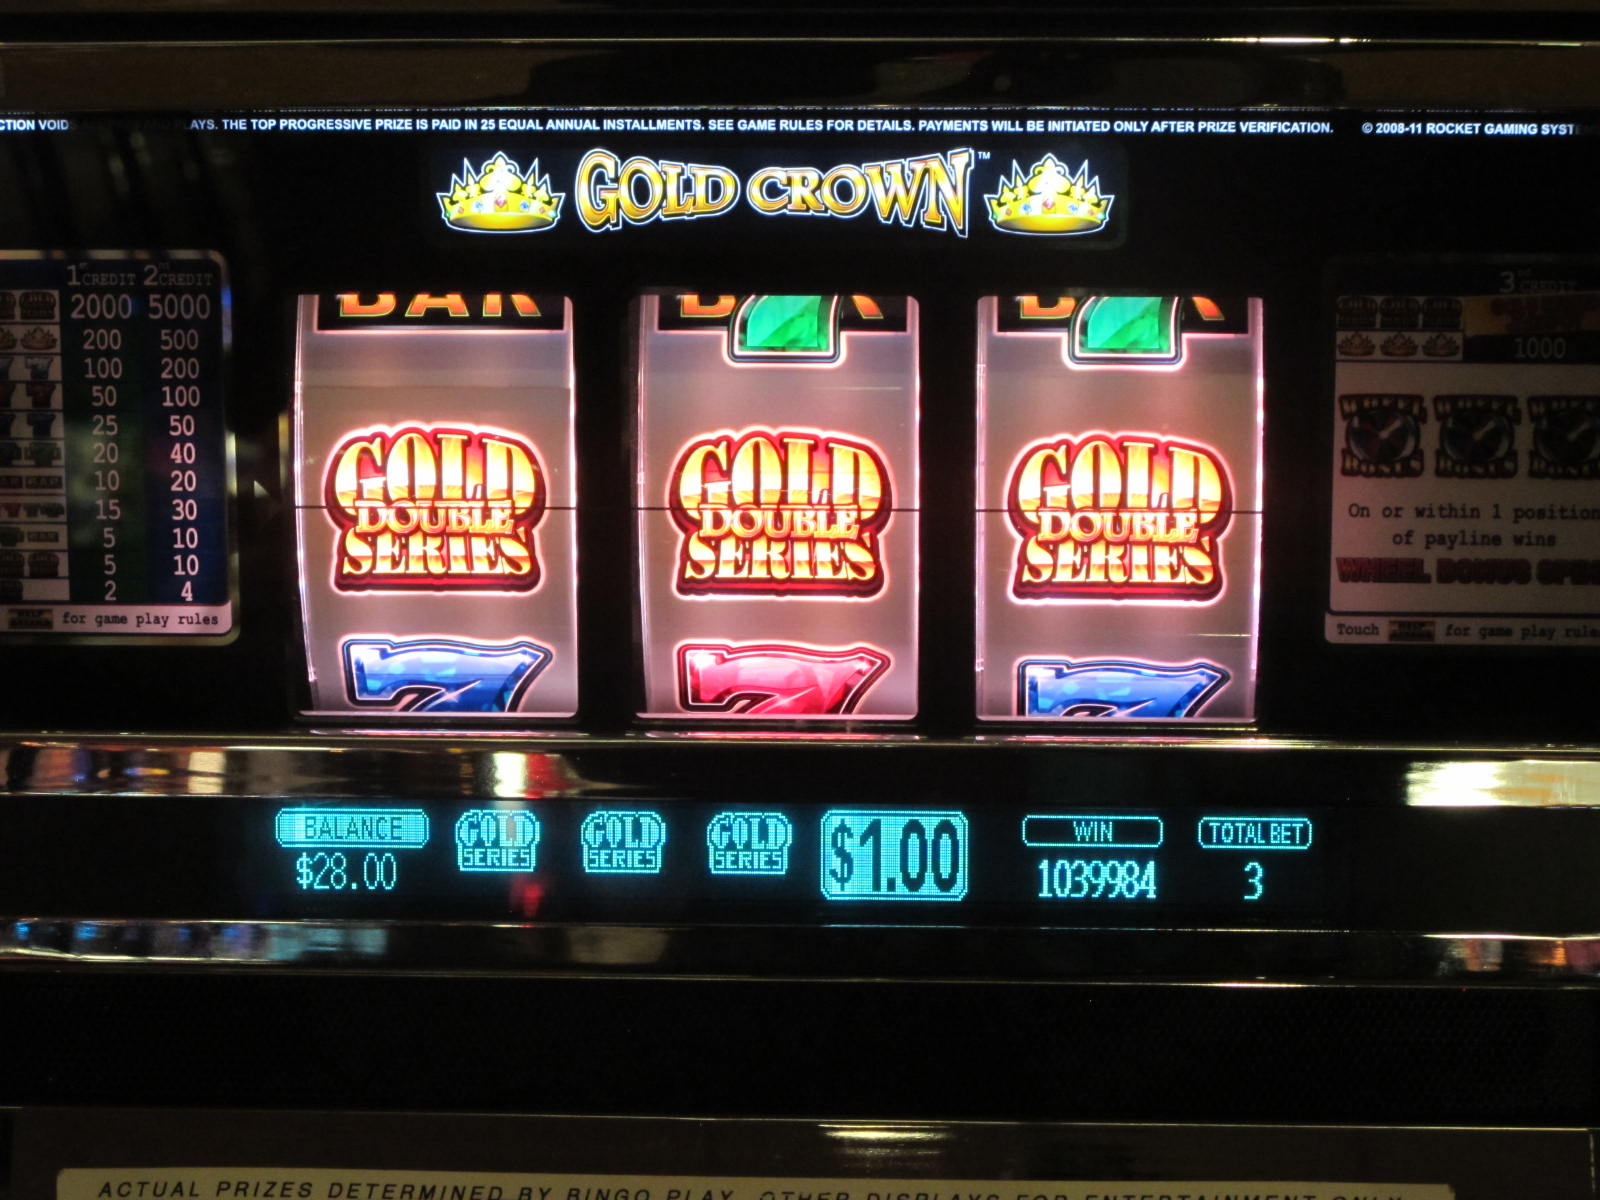 How to win on video gambling machines